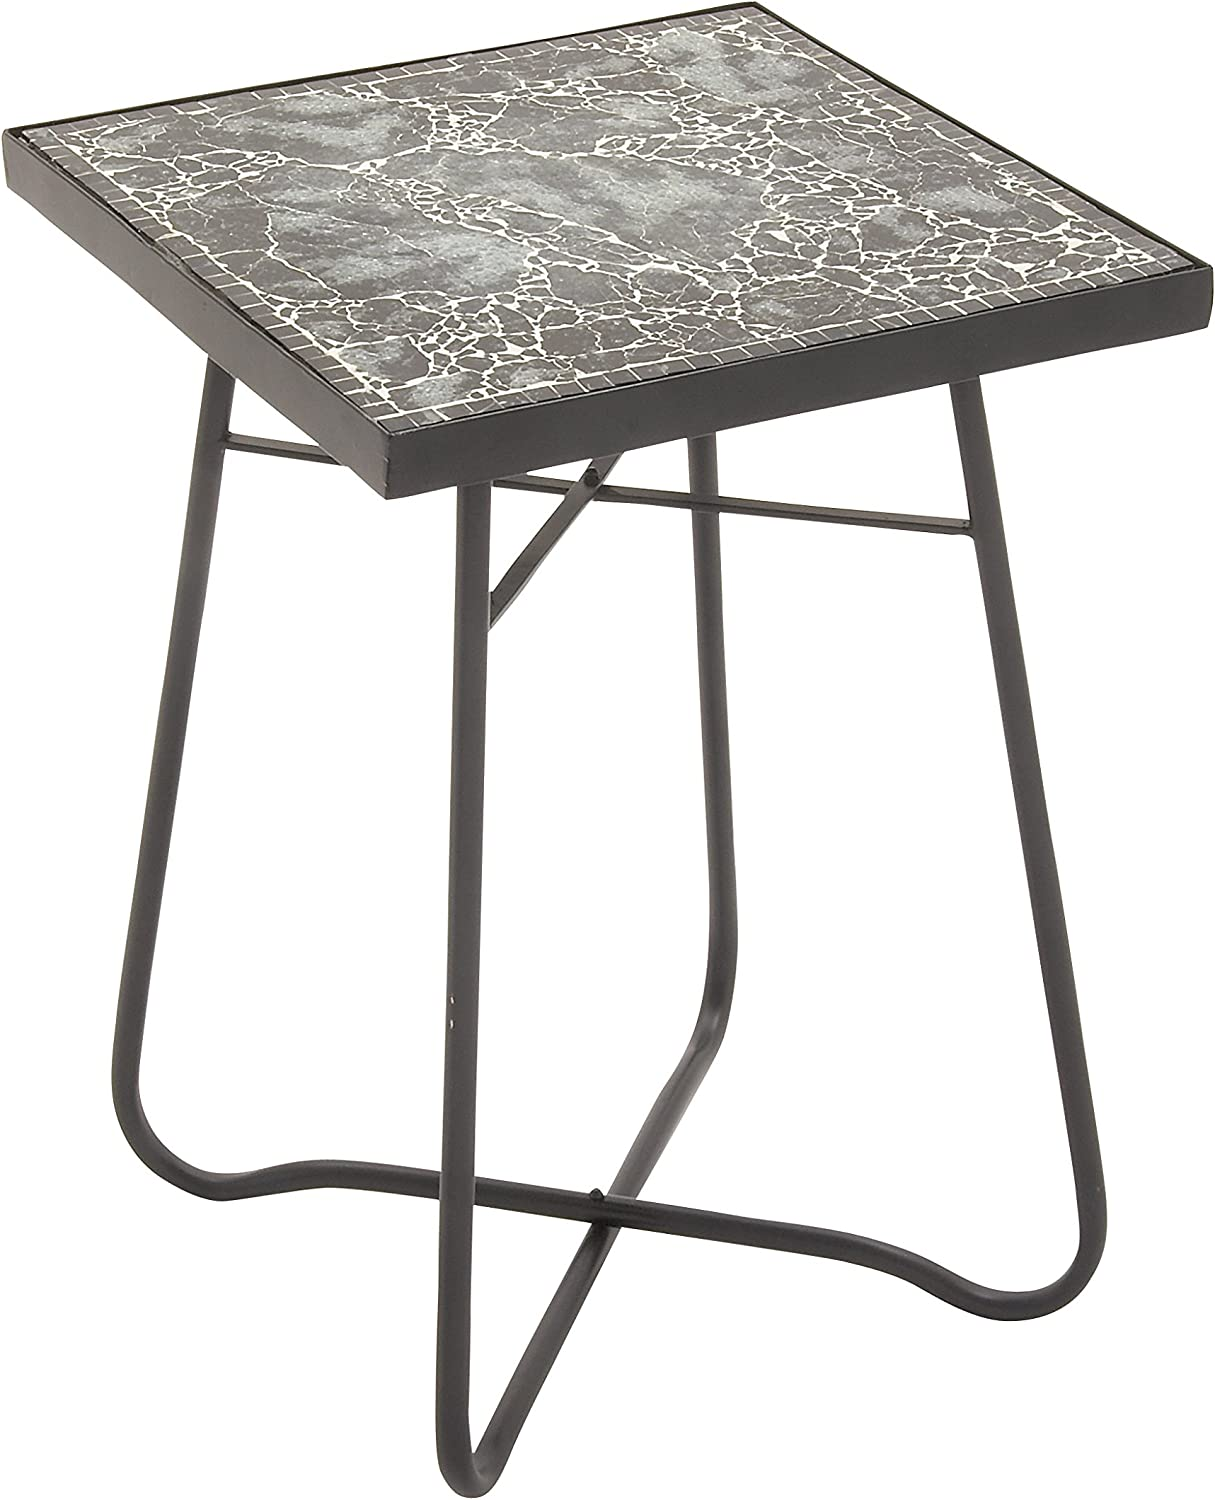 Benzara 45629 Metal Glass Square Accent Table, 16  x 23 , Black